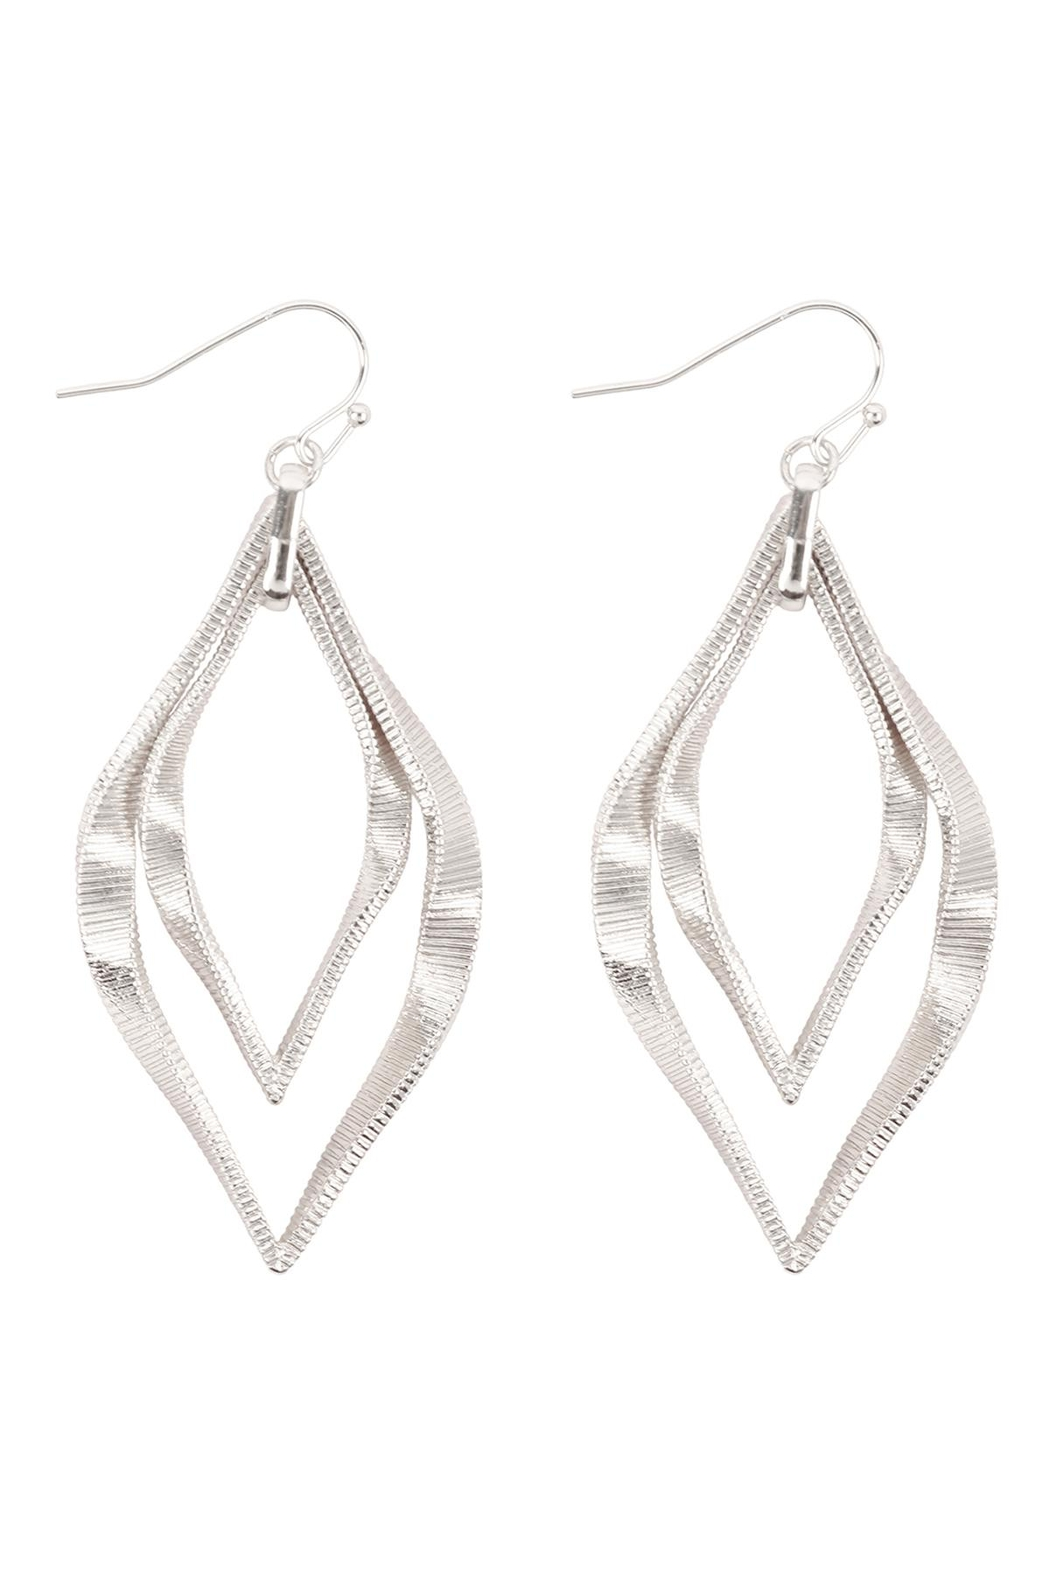 Riah Fashion Twist Textured-Layered-Marquise-Shape-Fish-Hook-Earrings - Front Cropped Image